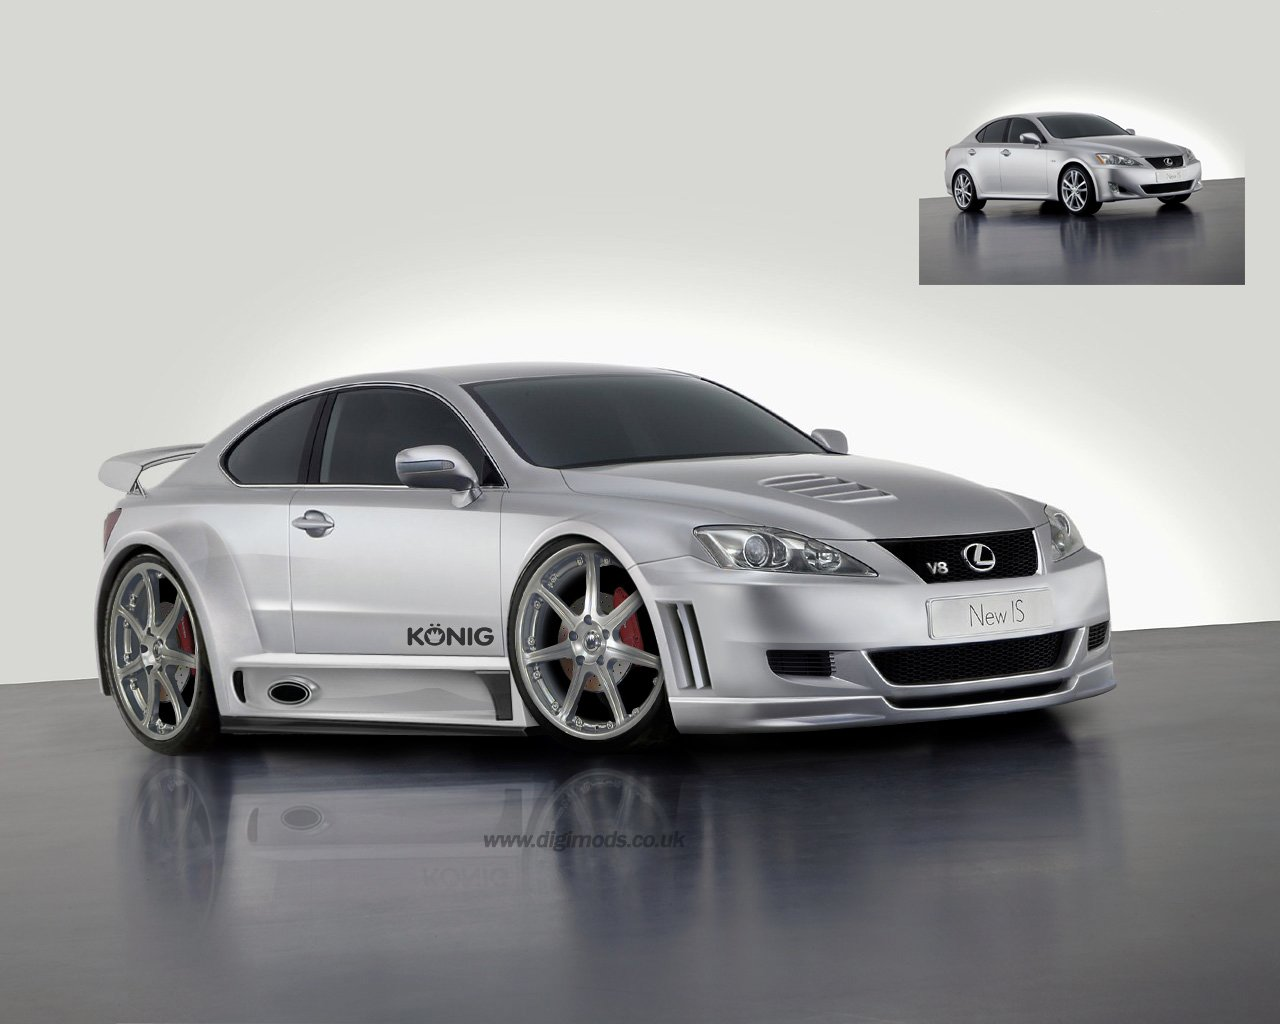 Latest Top Speedy Autos Lexus Cars Wallpapers Free Download